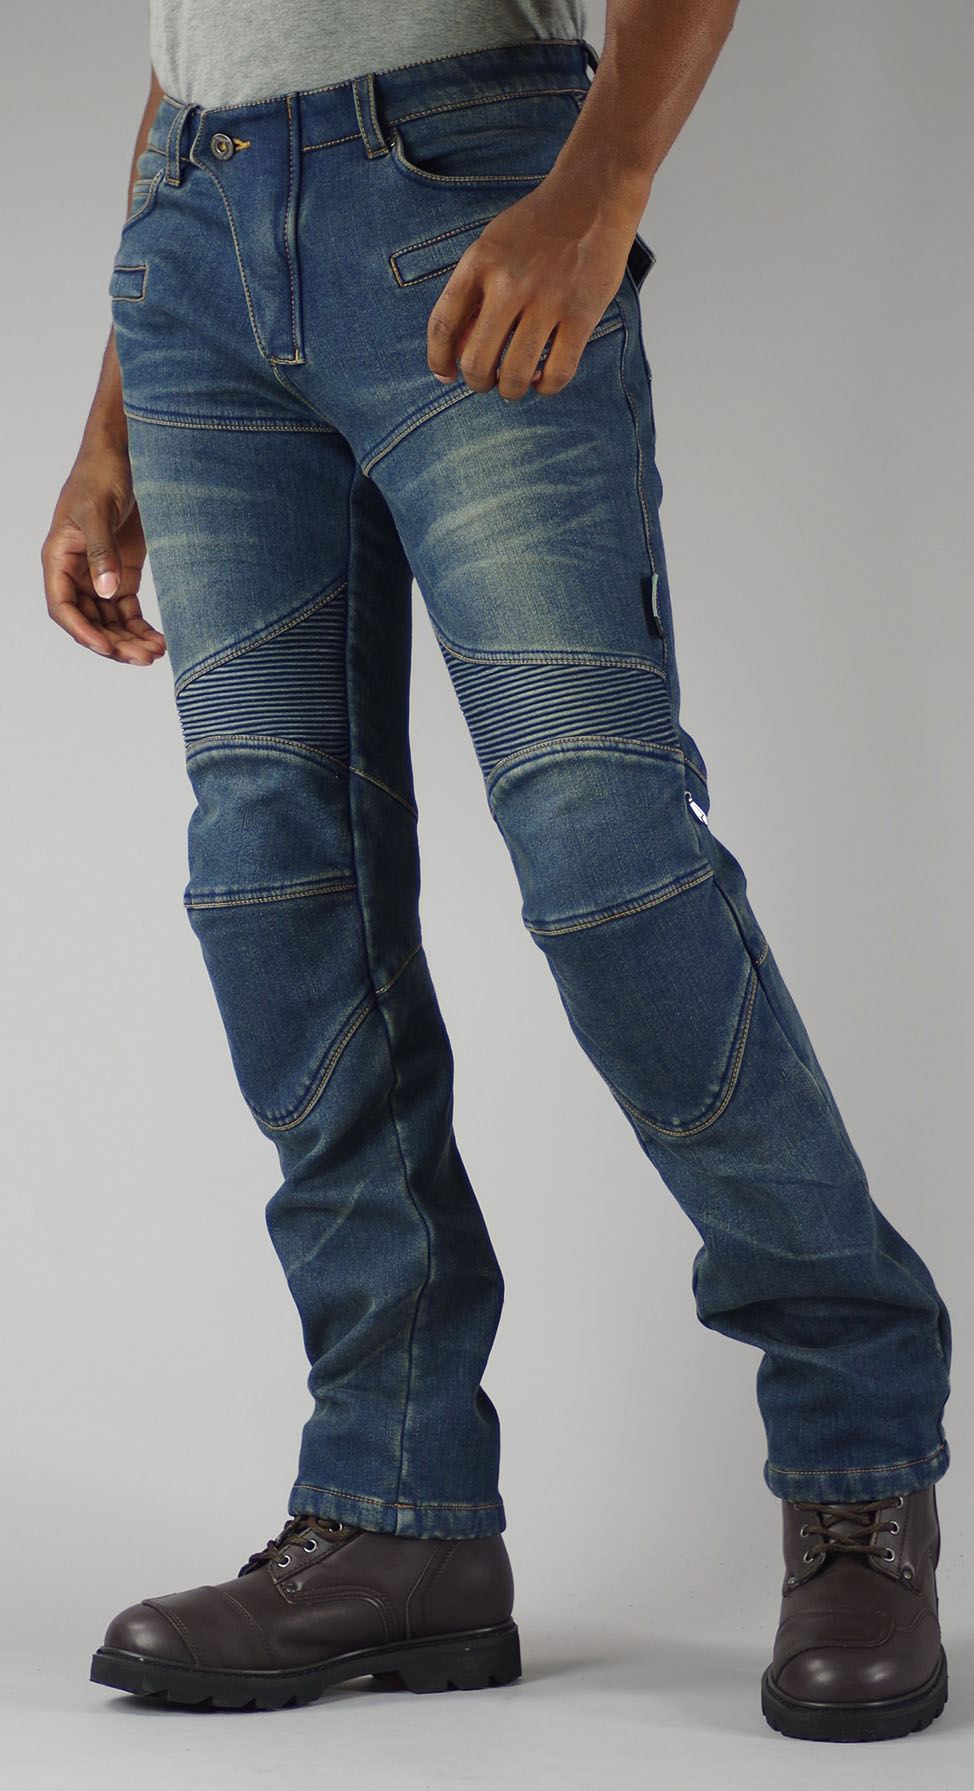 KOMINE Jeans Warm Denim Super Fit WJ - 921 S